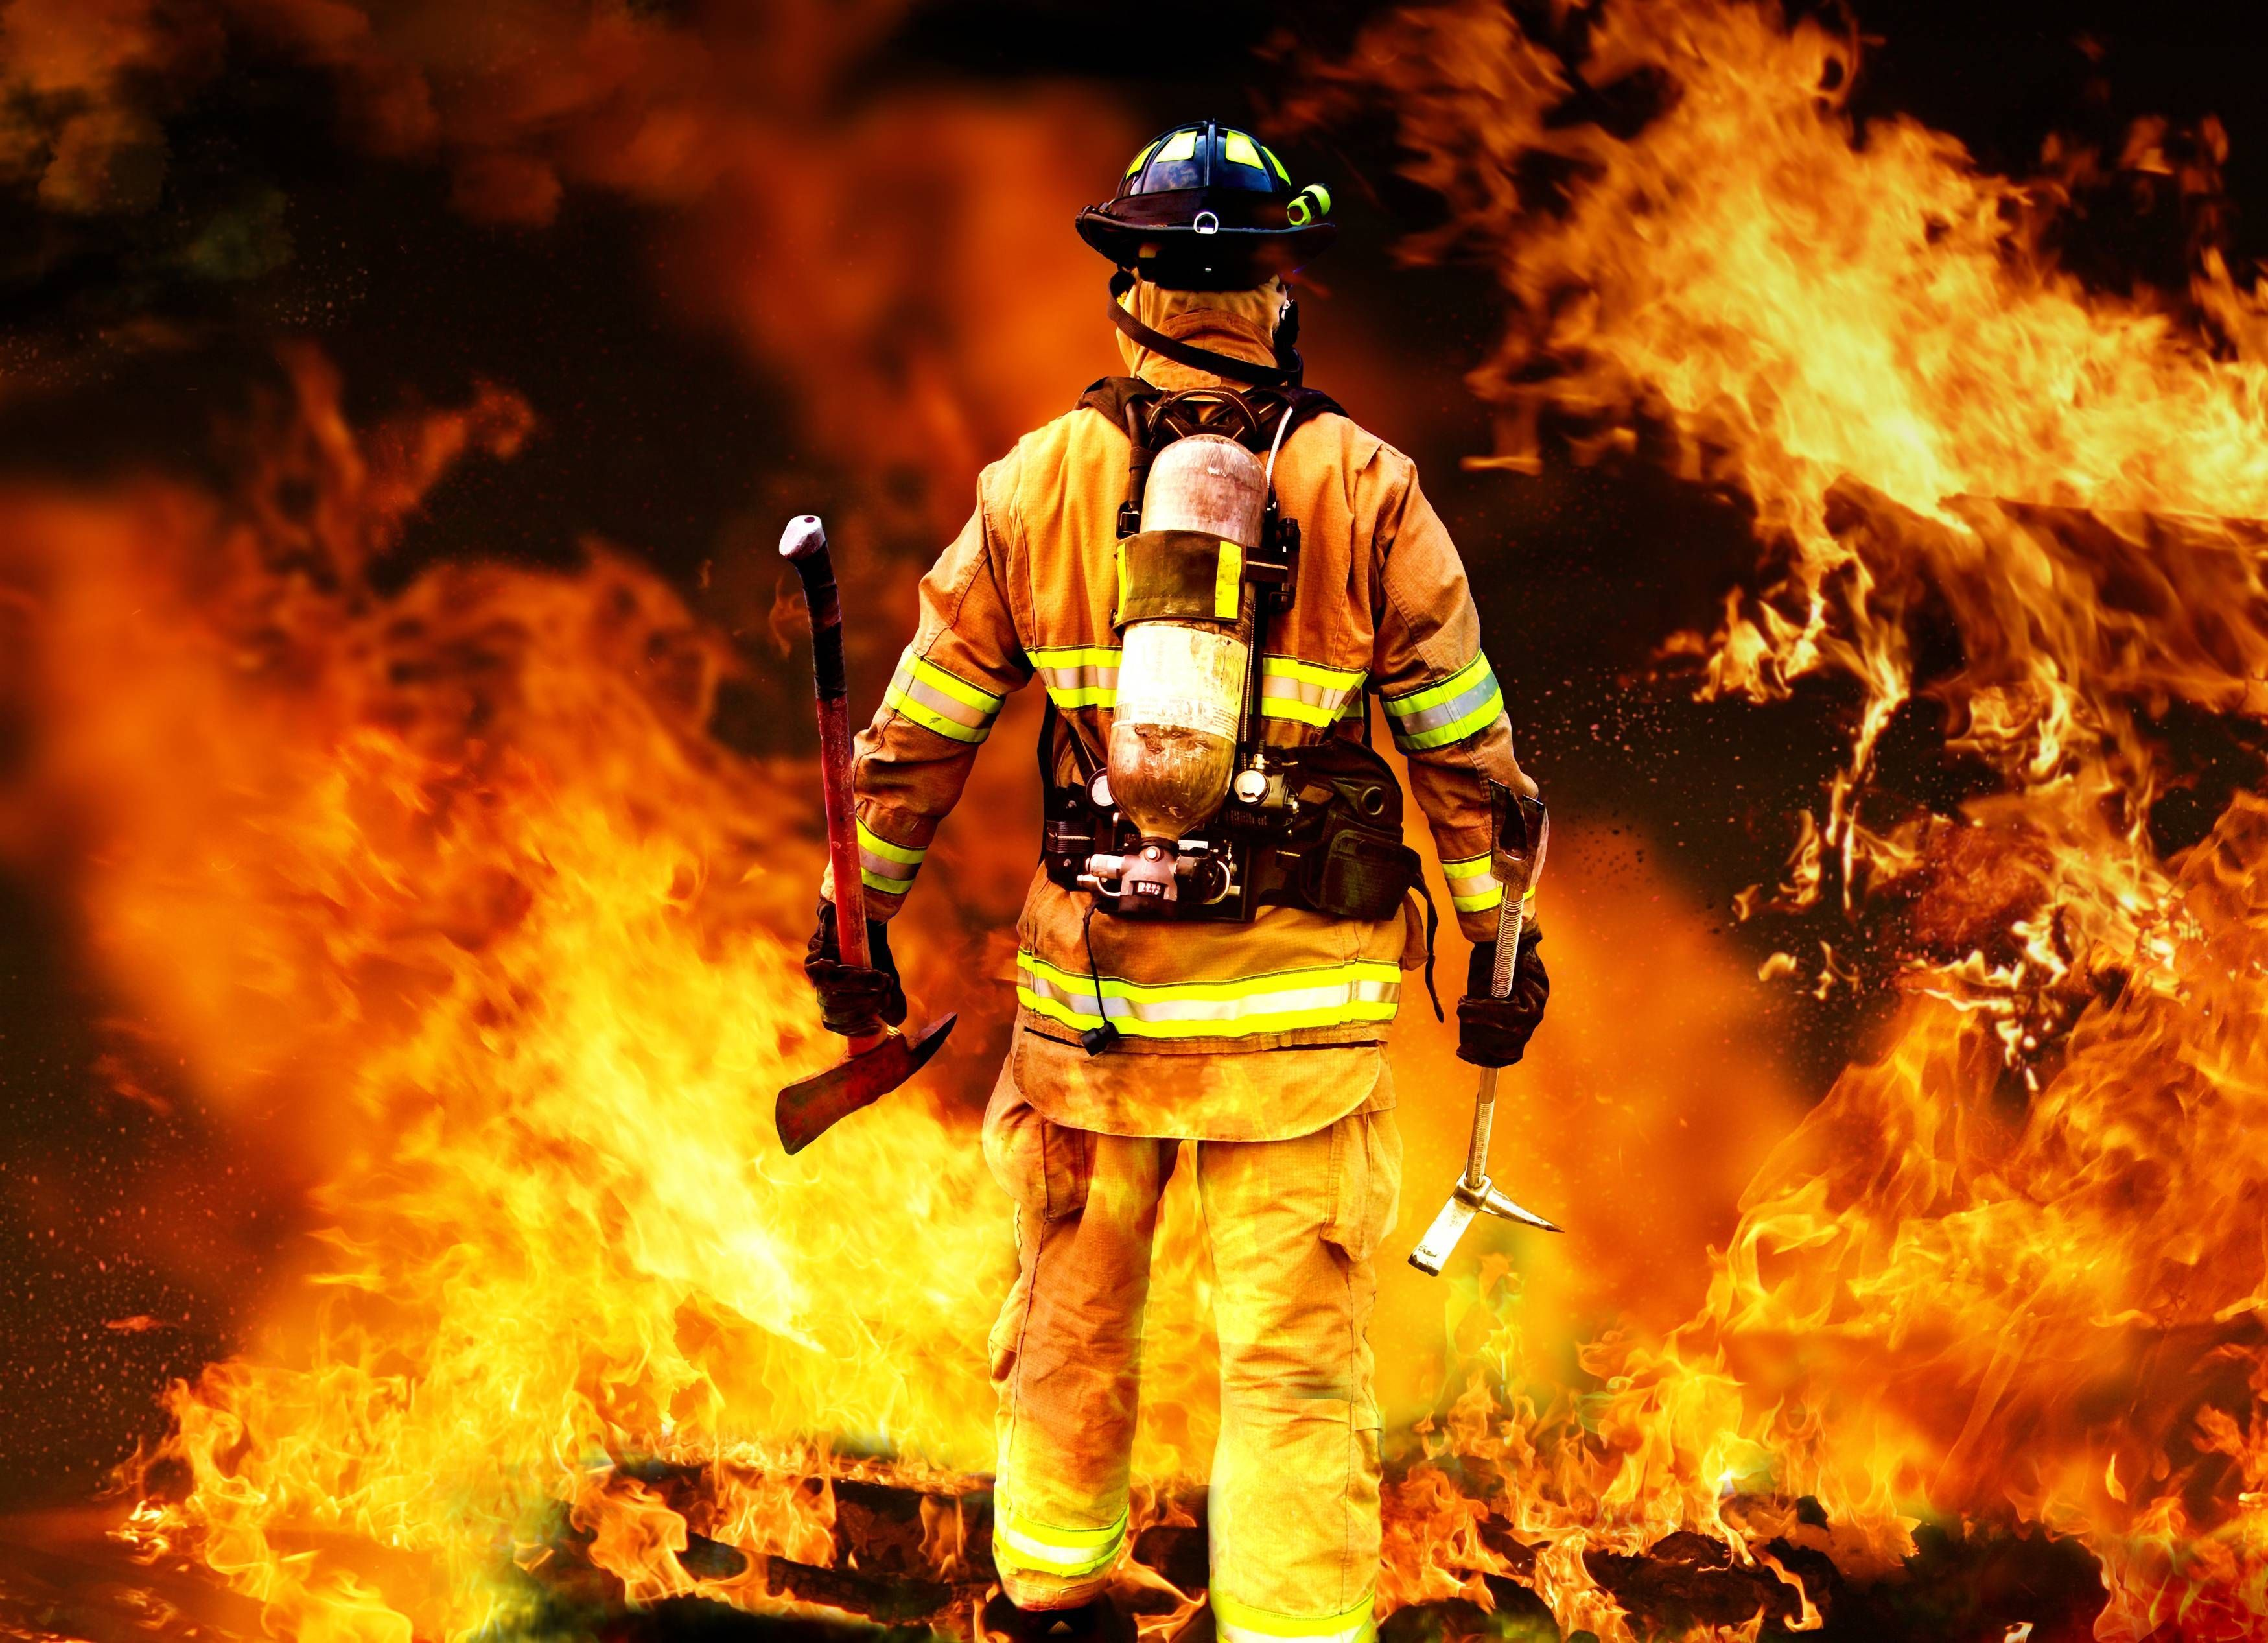 Firefighter Wallpapers   Top Firefighter Backgrounds 3499x2534